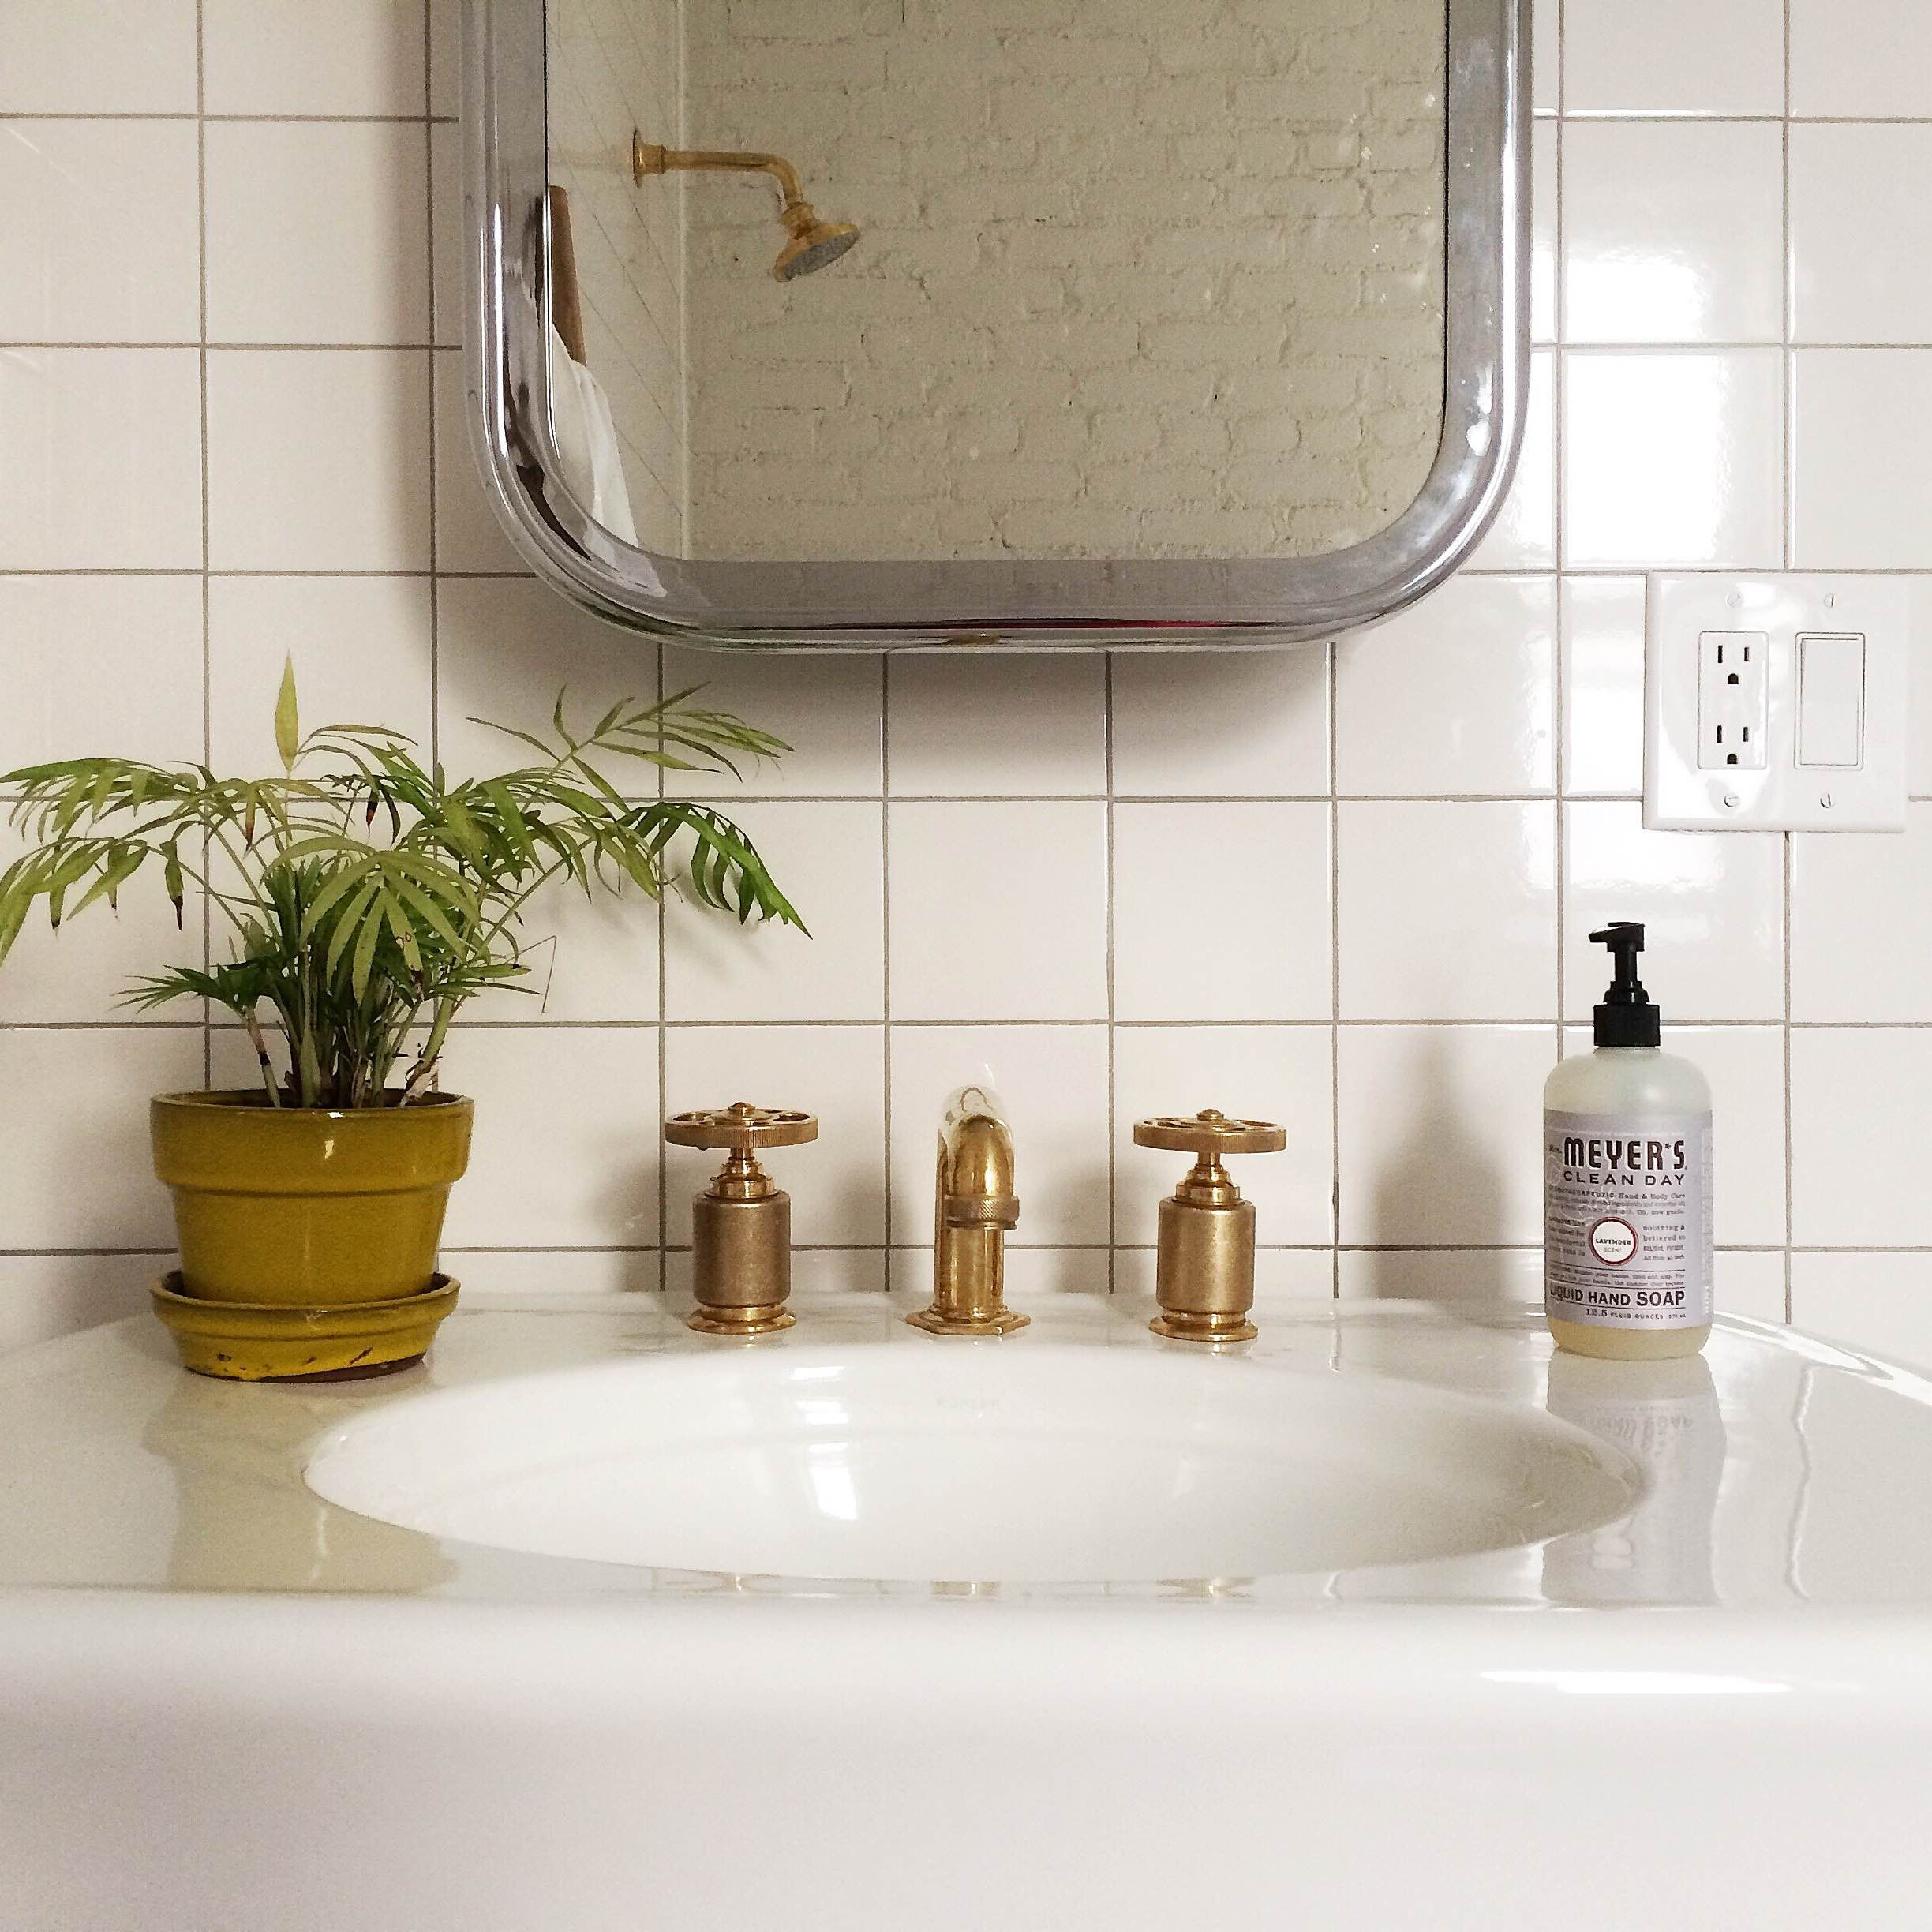 Brass Bathroom Hardware By Roman U0026 Williams For Waterworks.